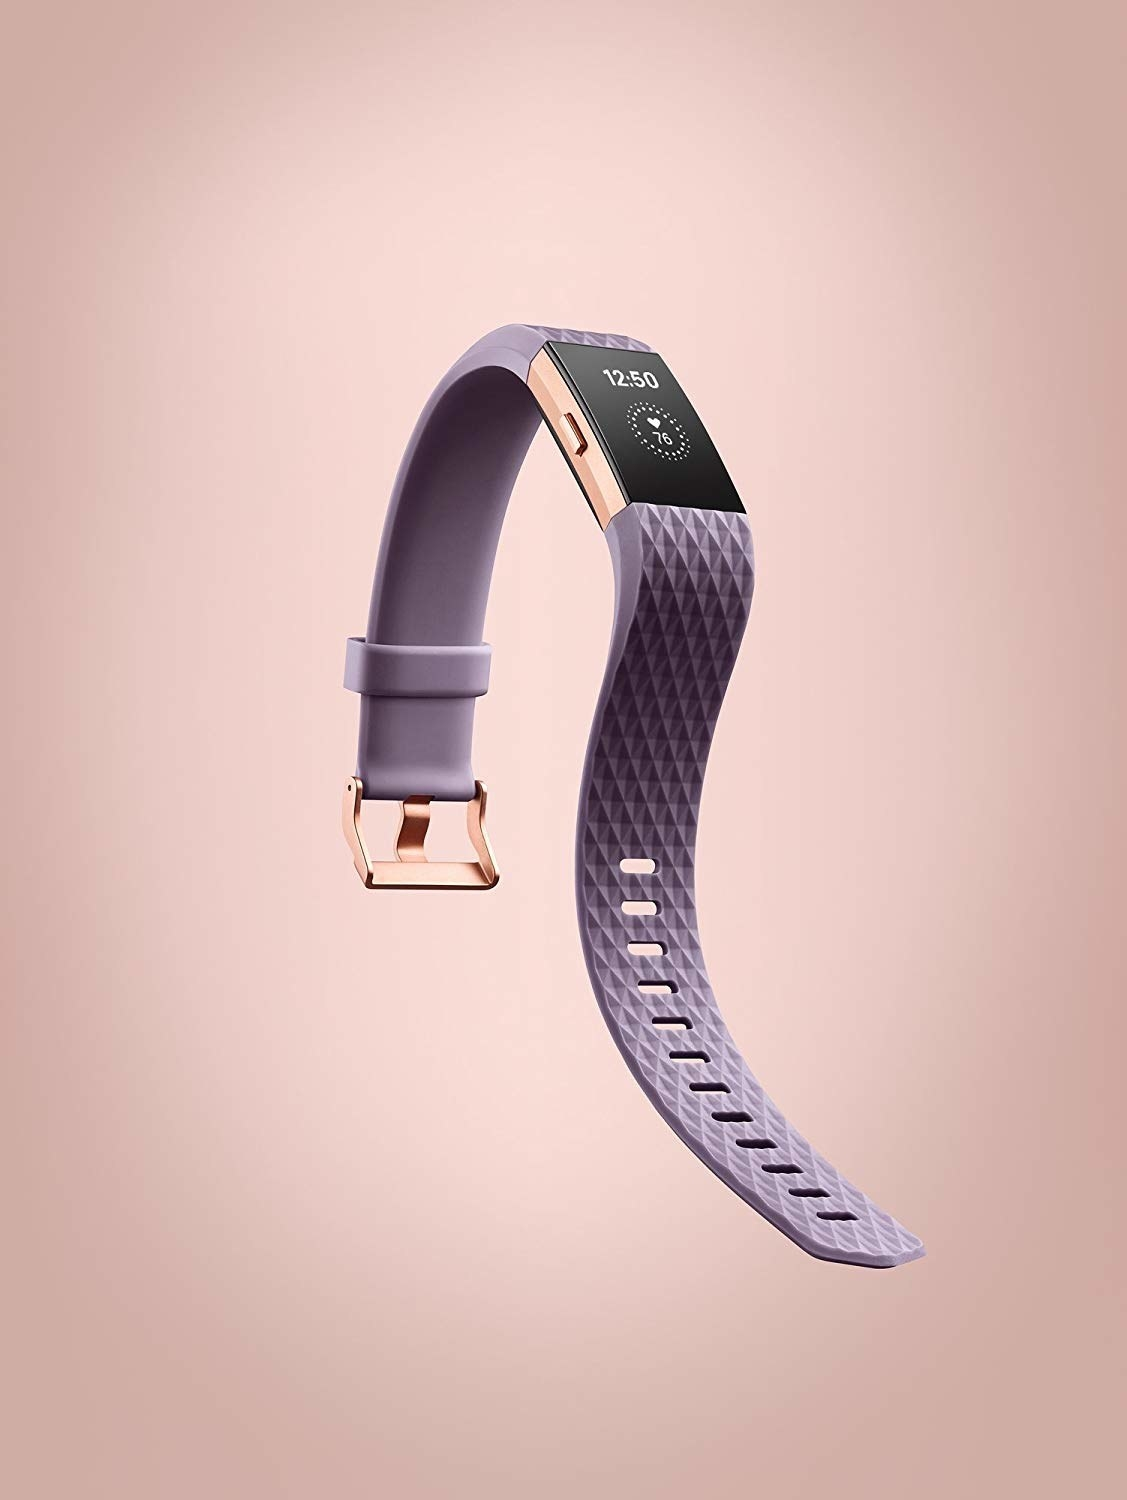 Fitbit product shot